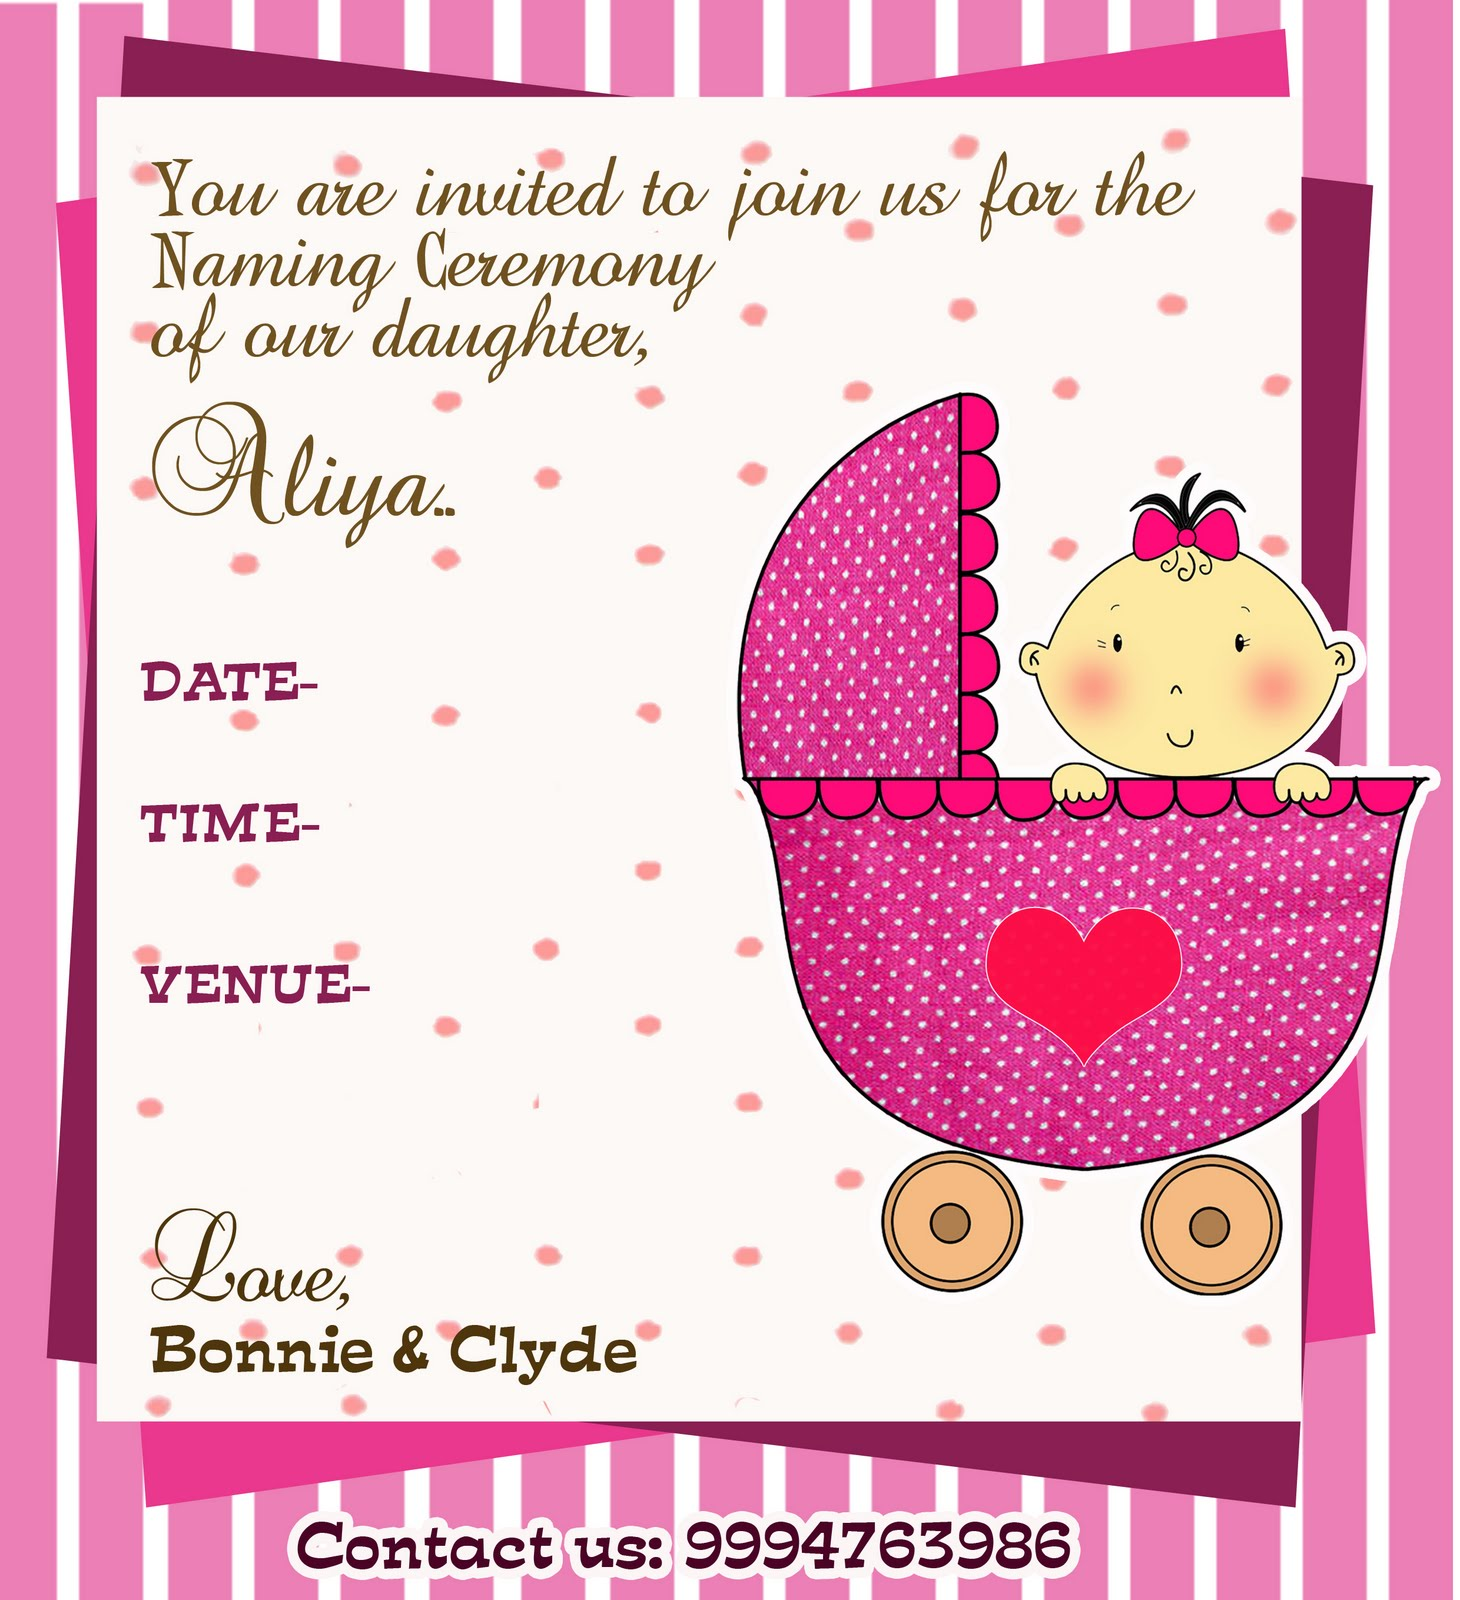 doodle doo   a naming ceremony invite designed for a friend